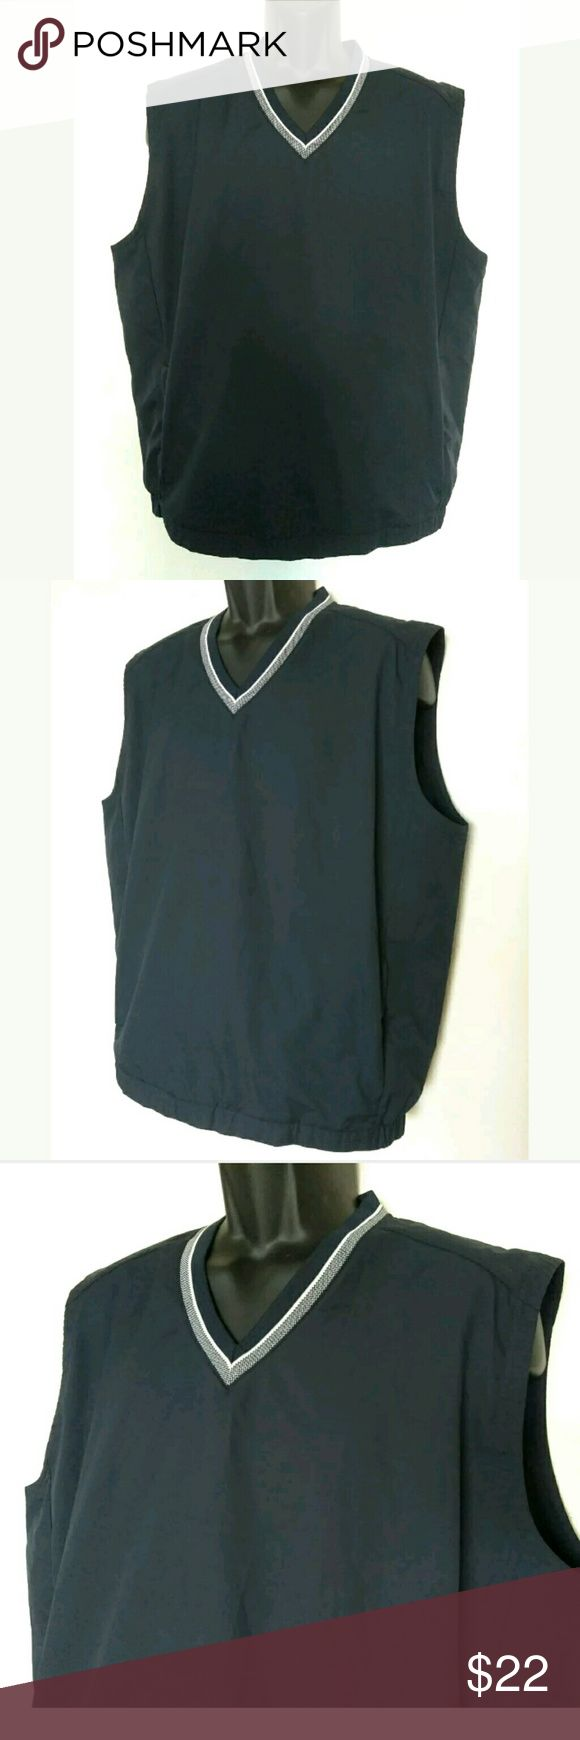 "Nike Golf Navy Blue Mens Vest Size Large V Neck You are buying: Nike Golf vest   Size: Large  Legnth: 28"" (laying flat)  Pit to pit: 26"" (laying flat)  Condition: Good condition   Location: From a smoke free and pet free home!  Nike Jackets & Coats Vests"